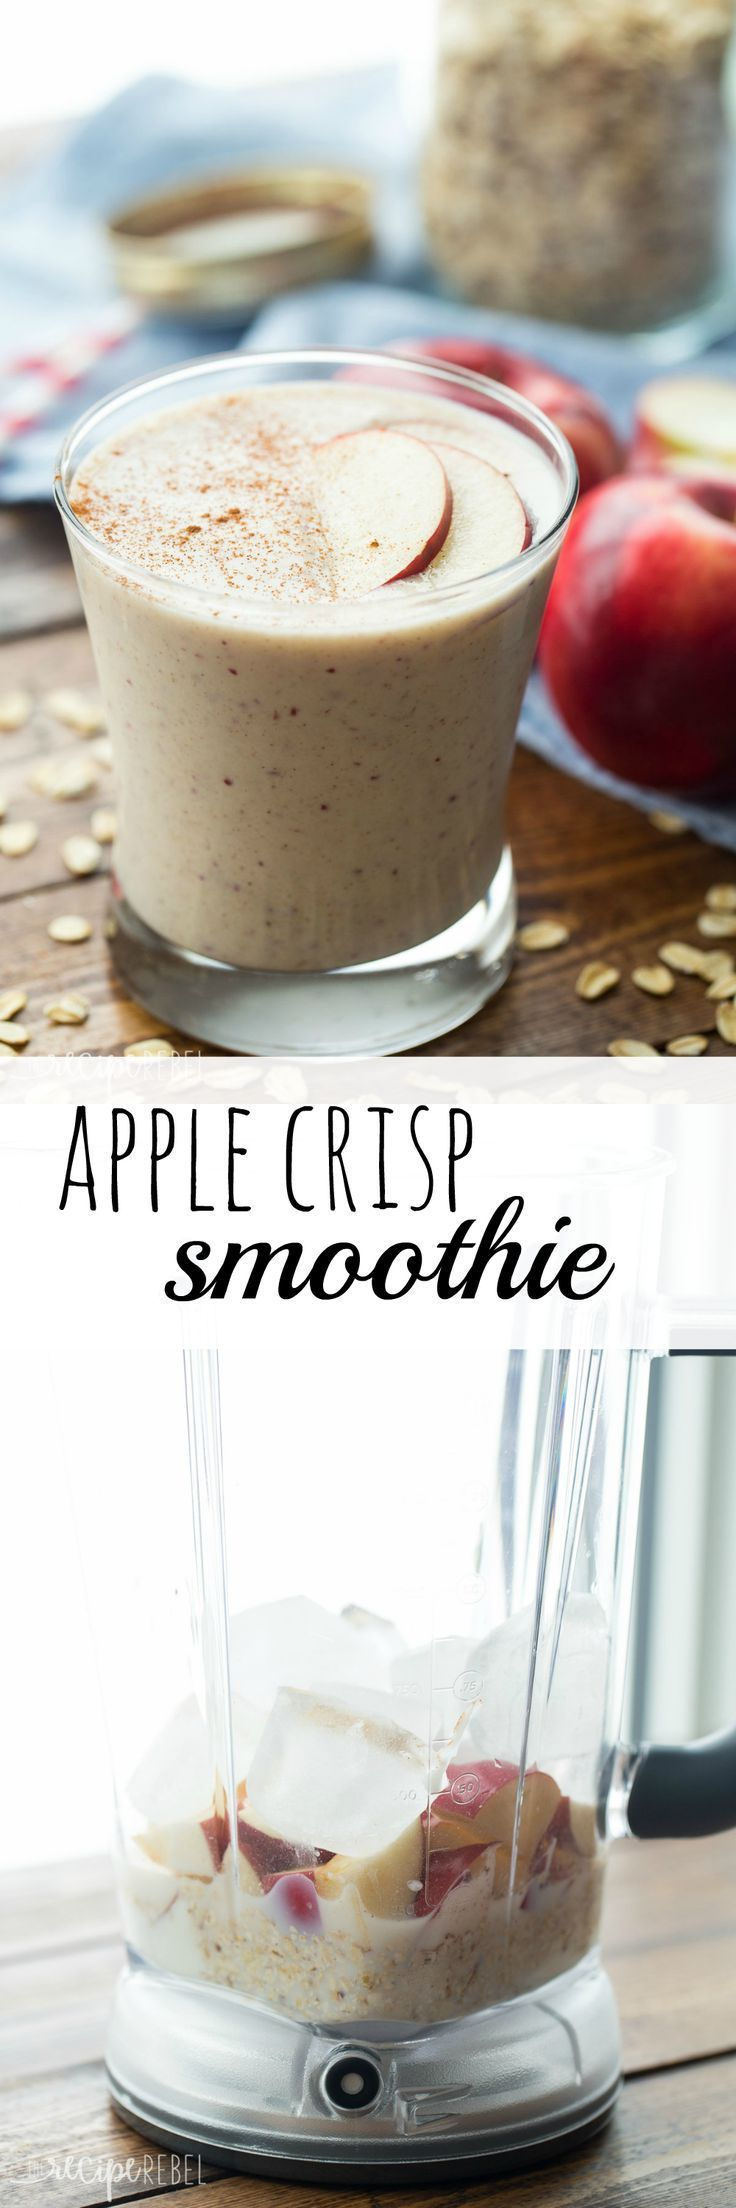 This Apple Crisp Smoothie has all the flavors of this favorite dessert — apple, oats, and cinnamon — in a healthy smoothie that's perfect for breakfast (or a healthier dessert!).